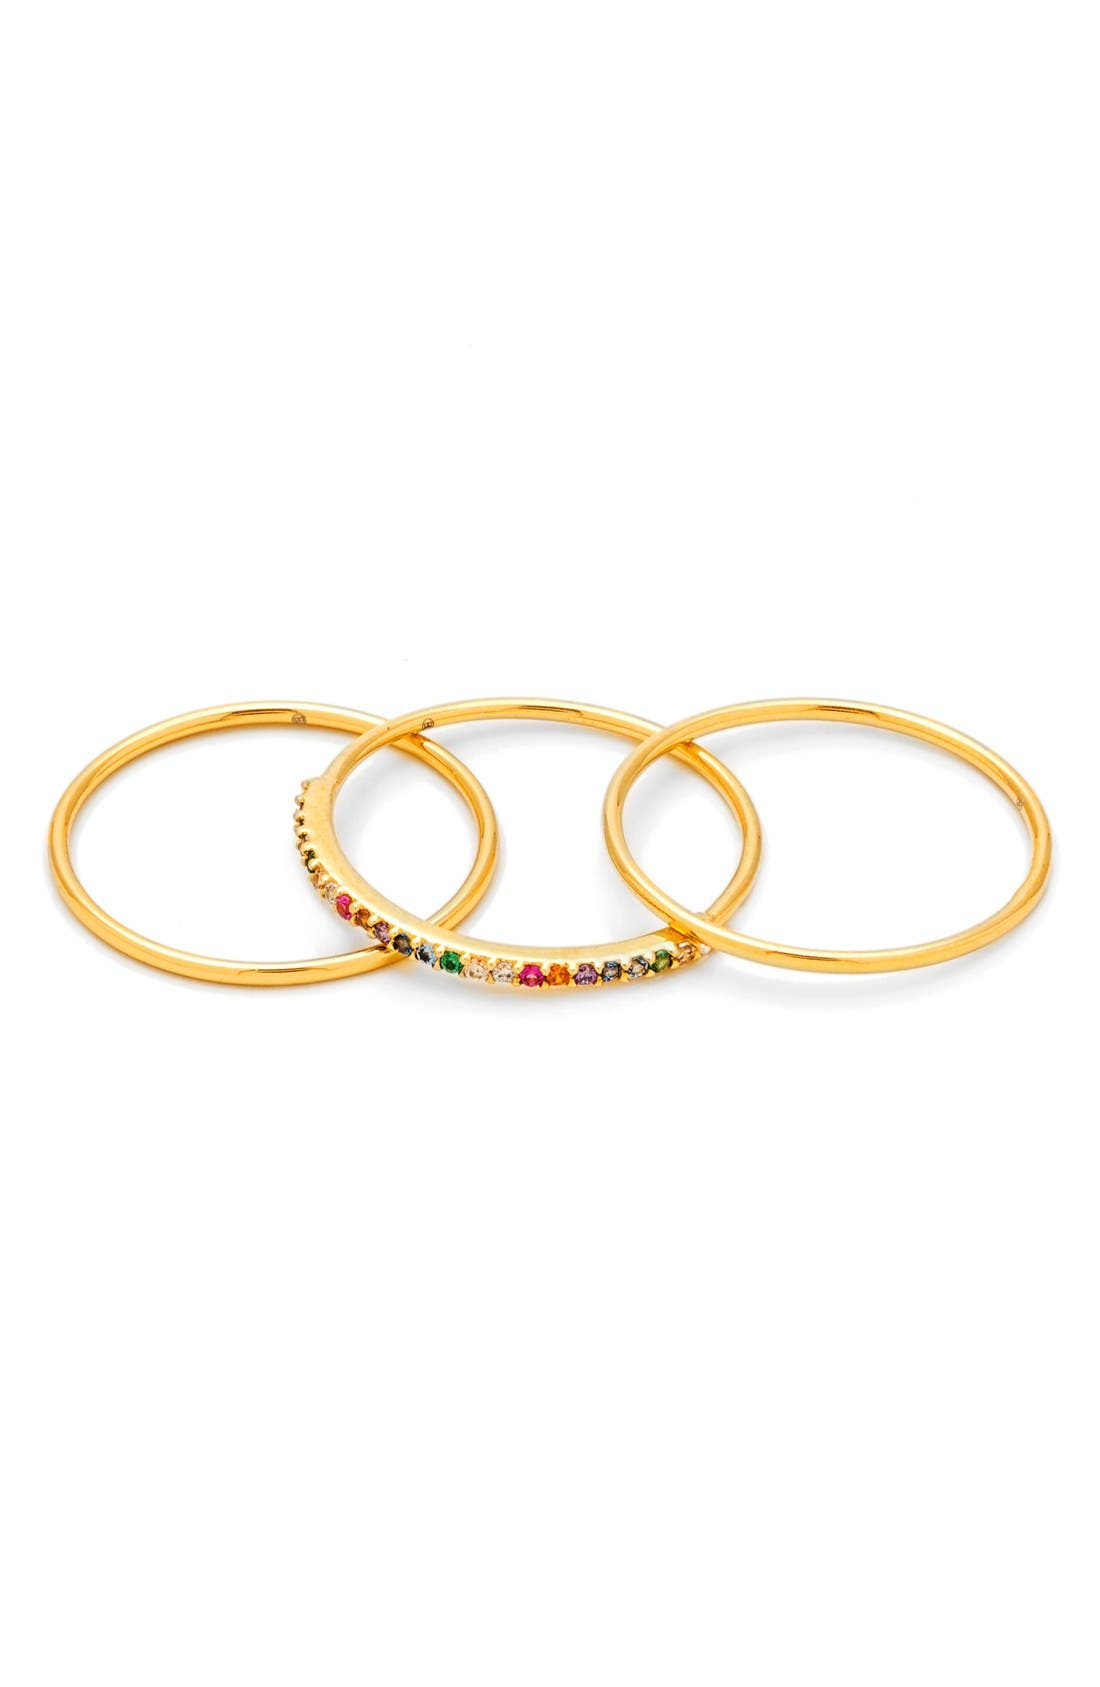 Shimmer Stackable Set of 3 Band Rings,                         Main,                         color, Rainbow